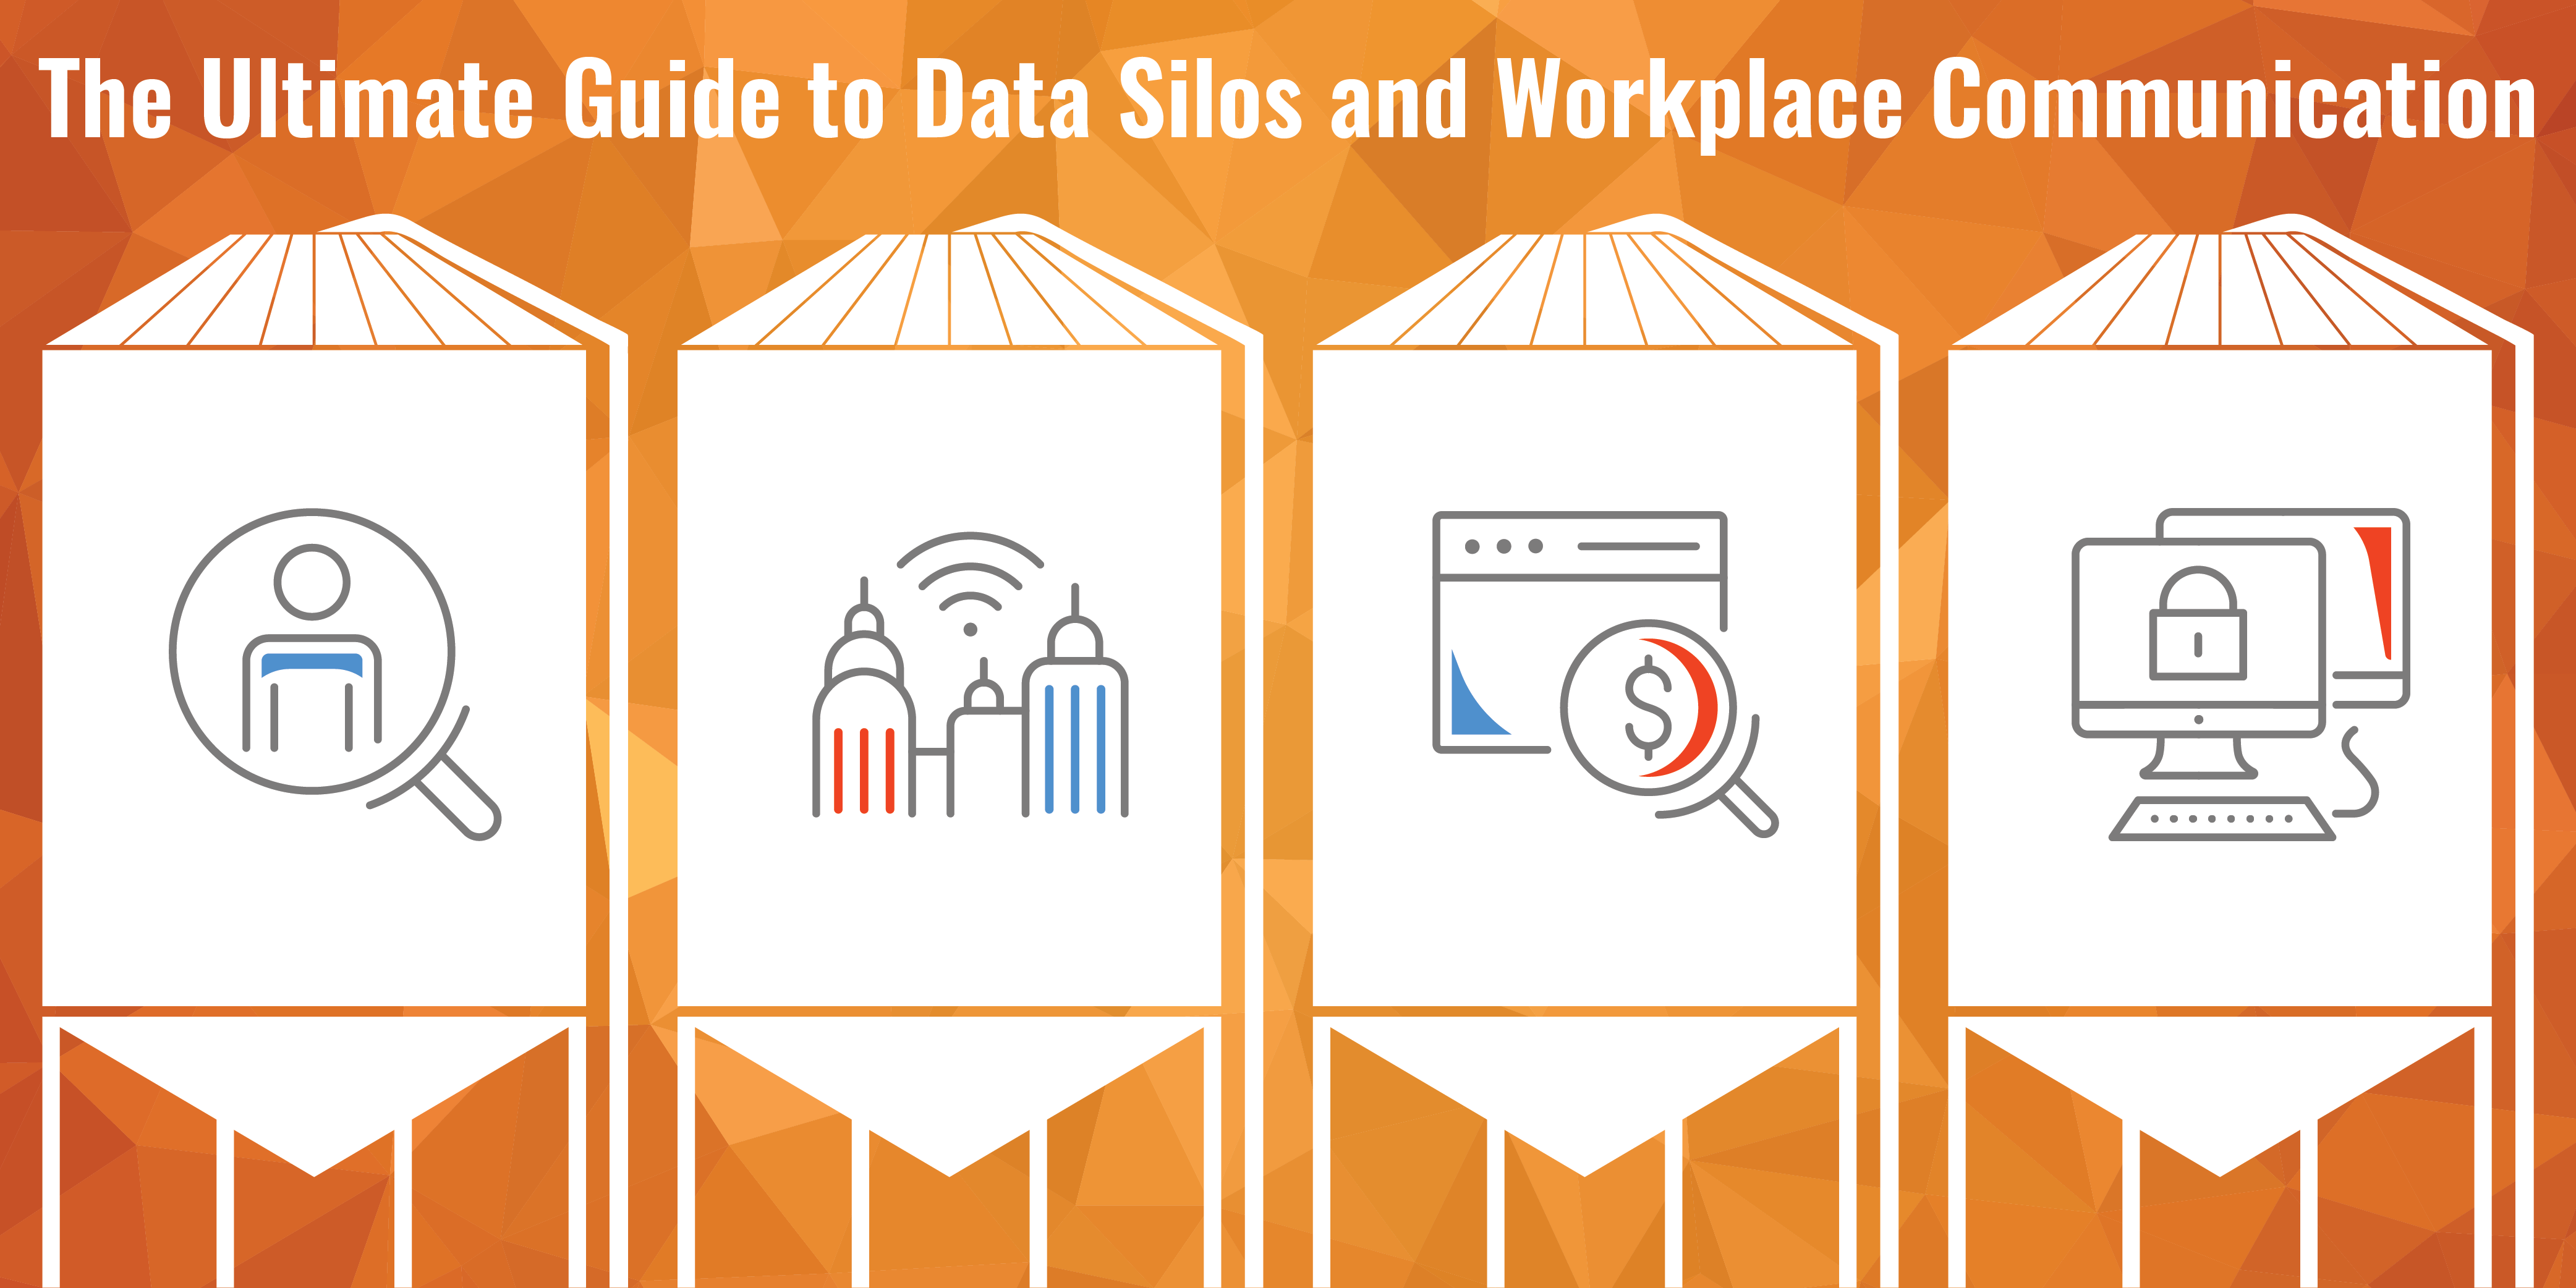 The Ultimate Guide to Data Silos and Workplace Communication